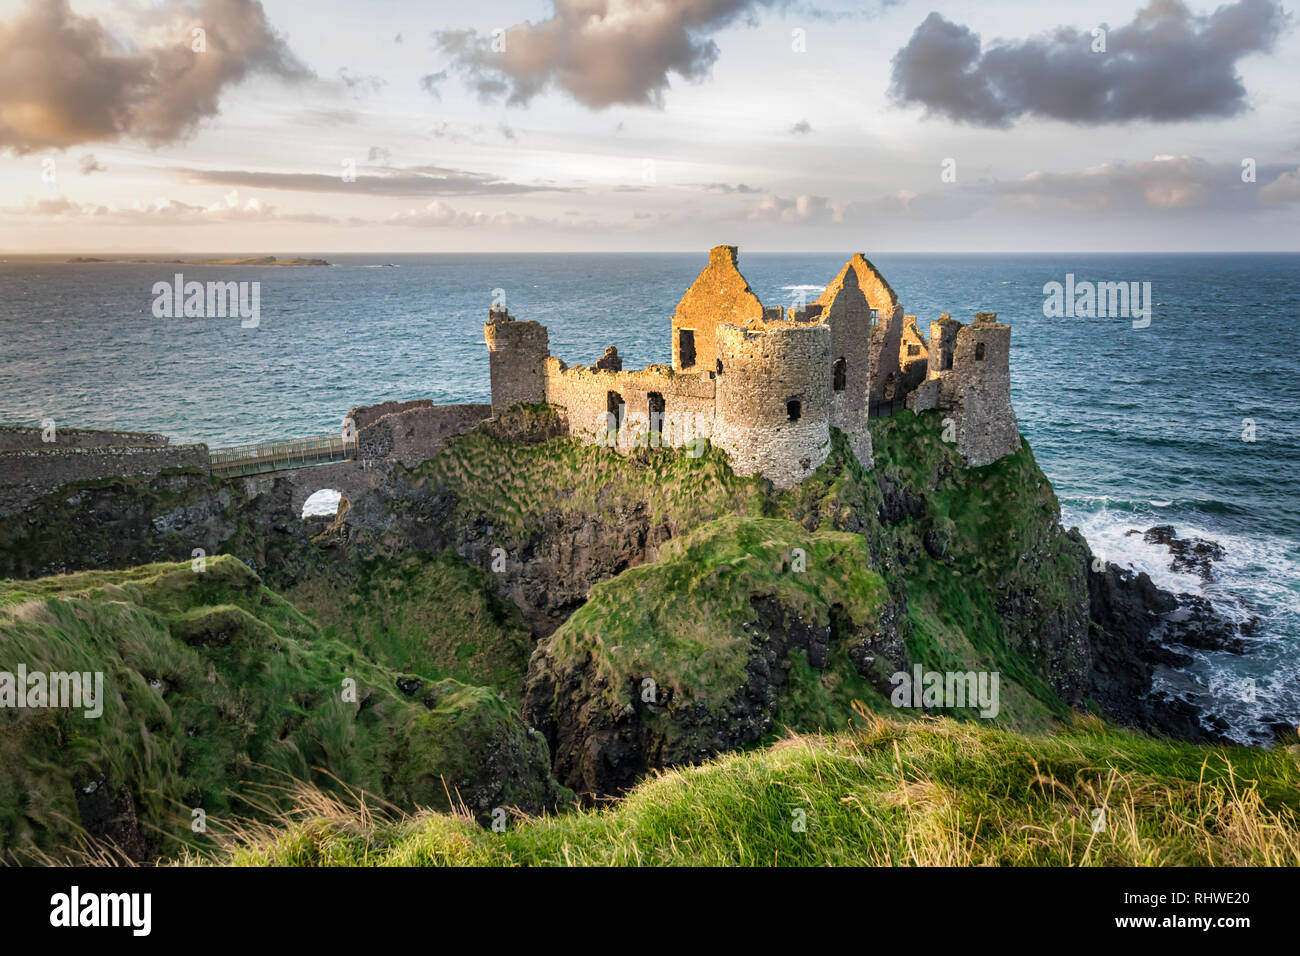 This is a picture of the ruins of Dunluce Castle in Northern Ireland.  It was built in the 13th century on the top of a sea cliff looking out to the A - Stock Image